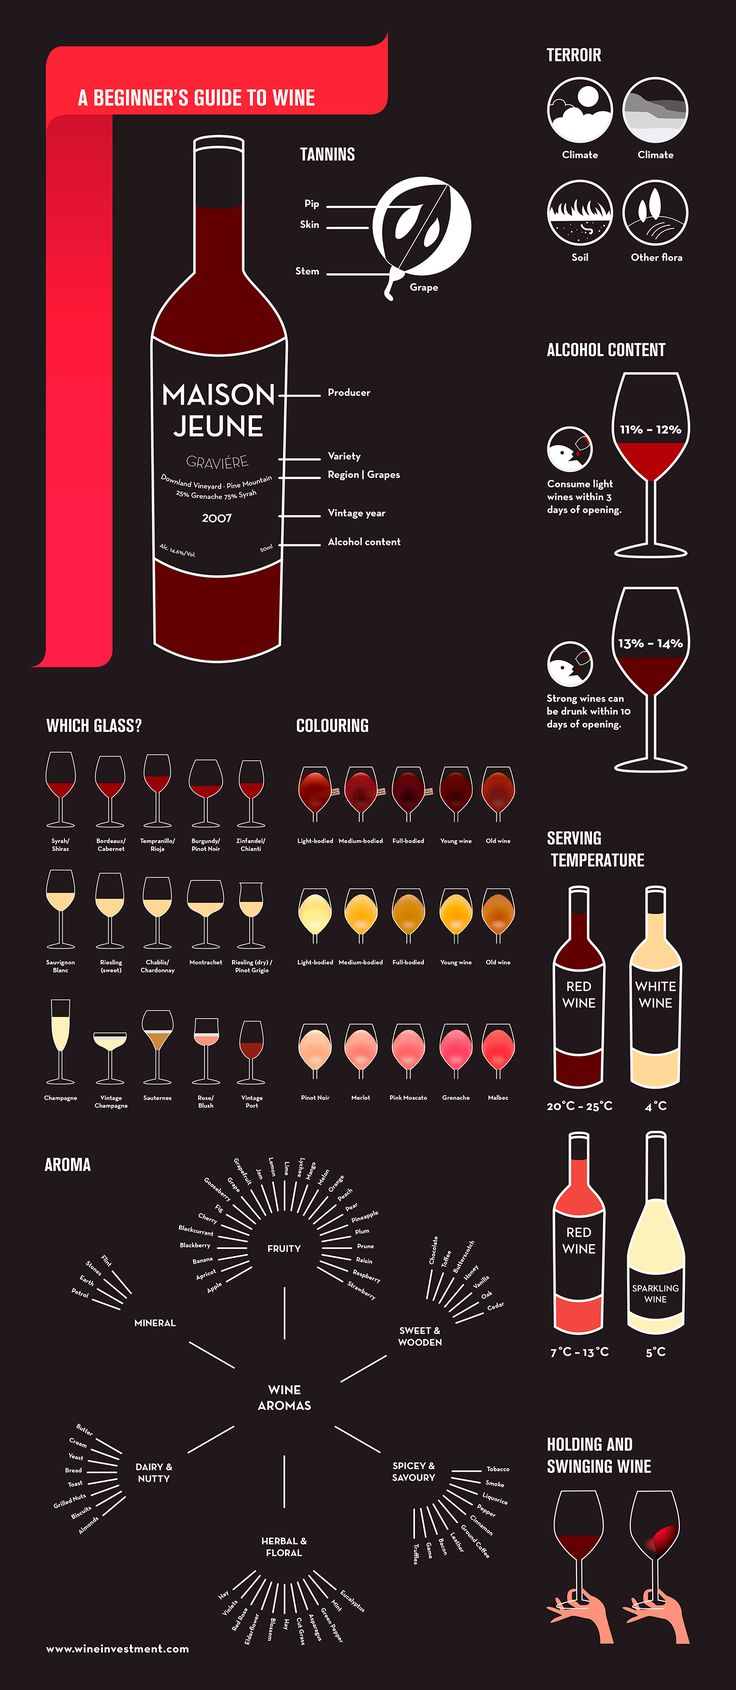 A beginner's guide to wine which digs a little deeper than just the surface... #vino #wine #winelovers